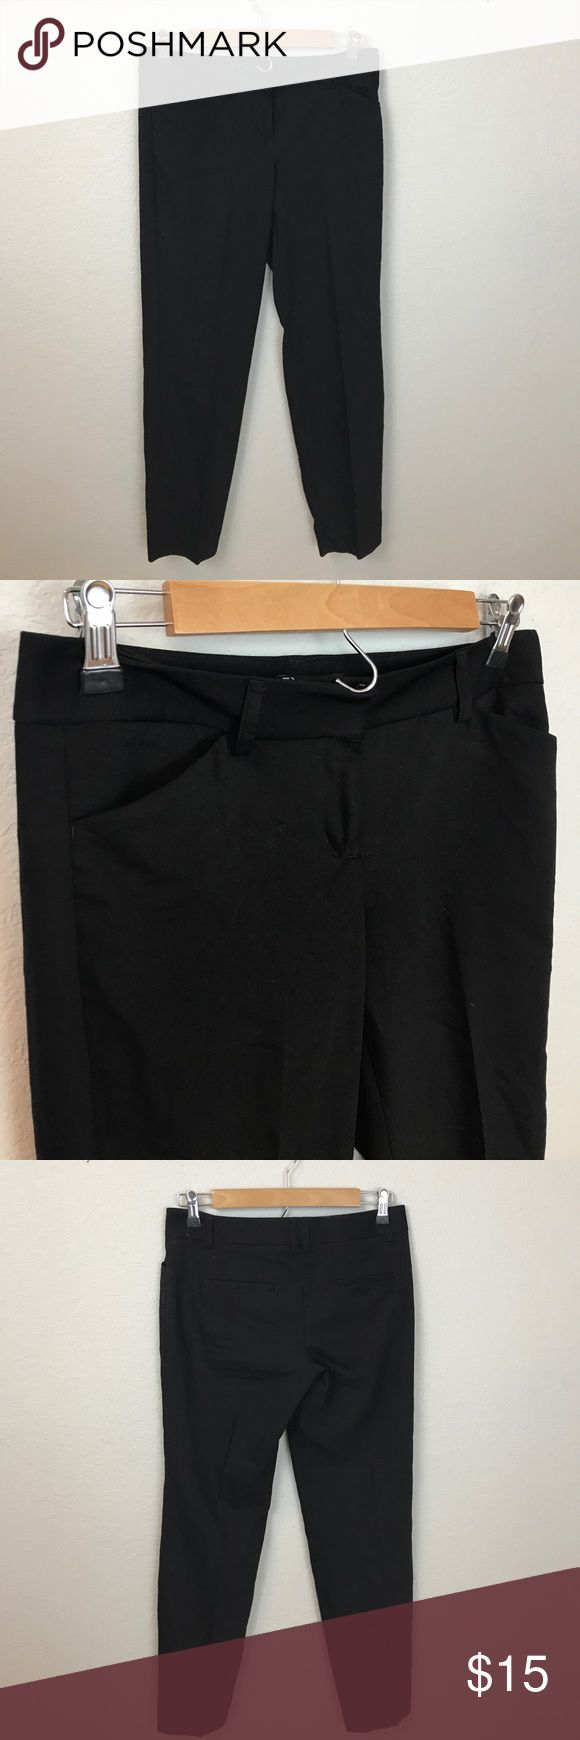 """Express Black Editor Pants 49% polyester 47% cotton 4% spandex   Length is app 35.5"""". Inseam is app 27"""". Small snag seen in last picture. Not noticeable when wearing. Easily fixed if needed. Express Pants Ankle & Cropped"""